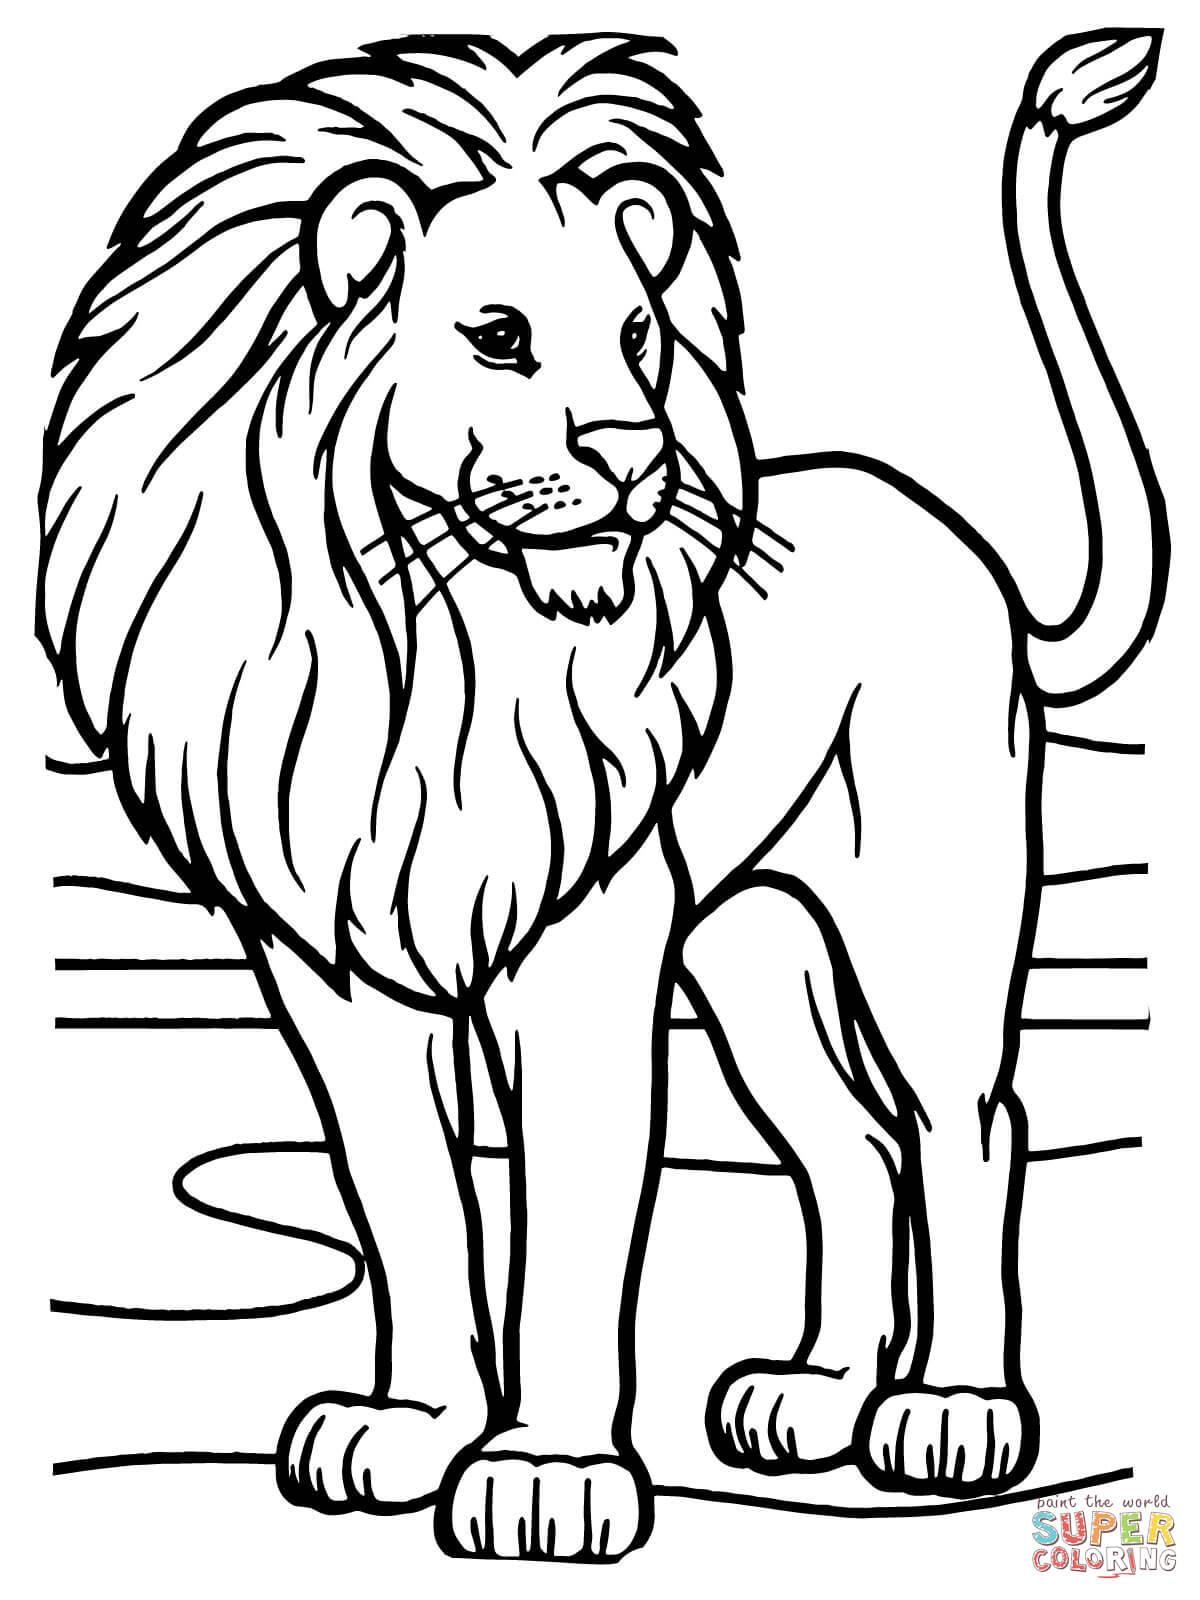 coloring lion lion coloring pages to download and print for free lion coloring